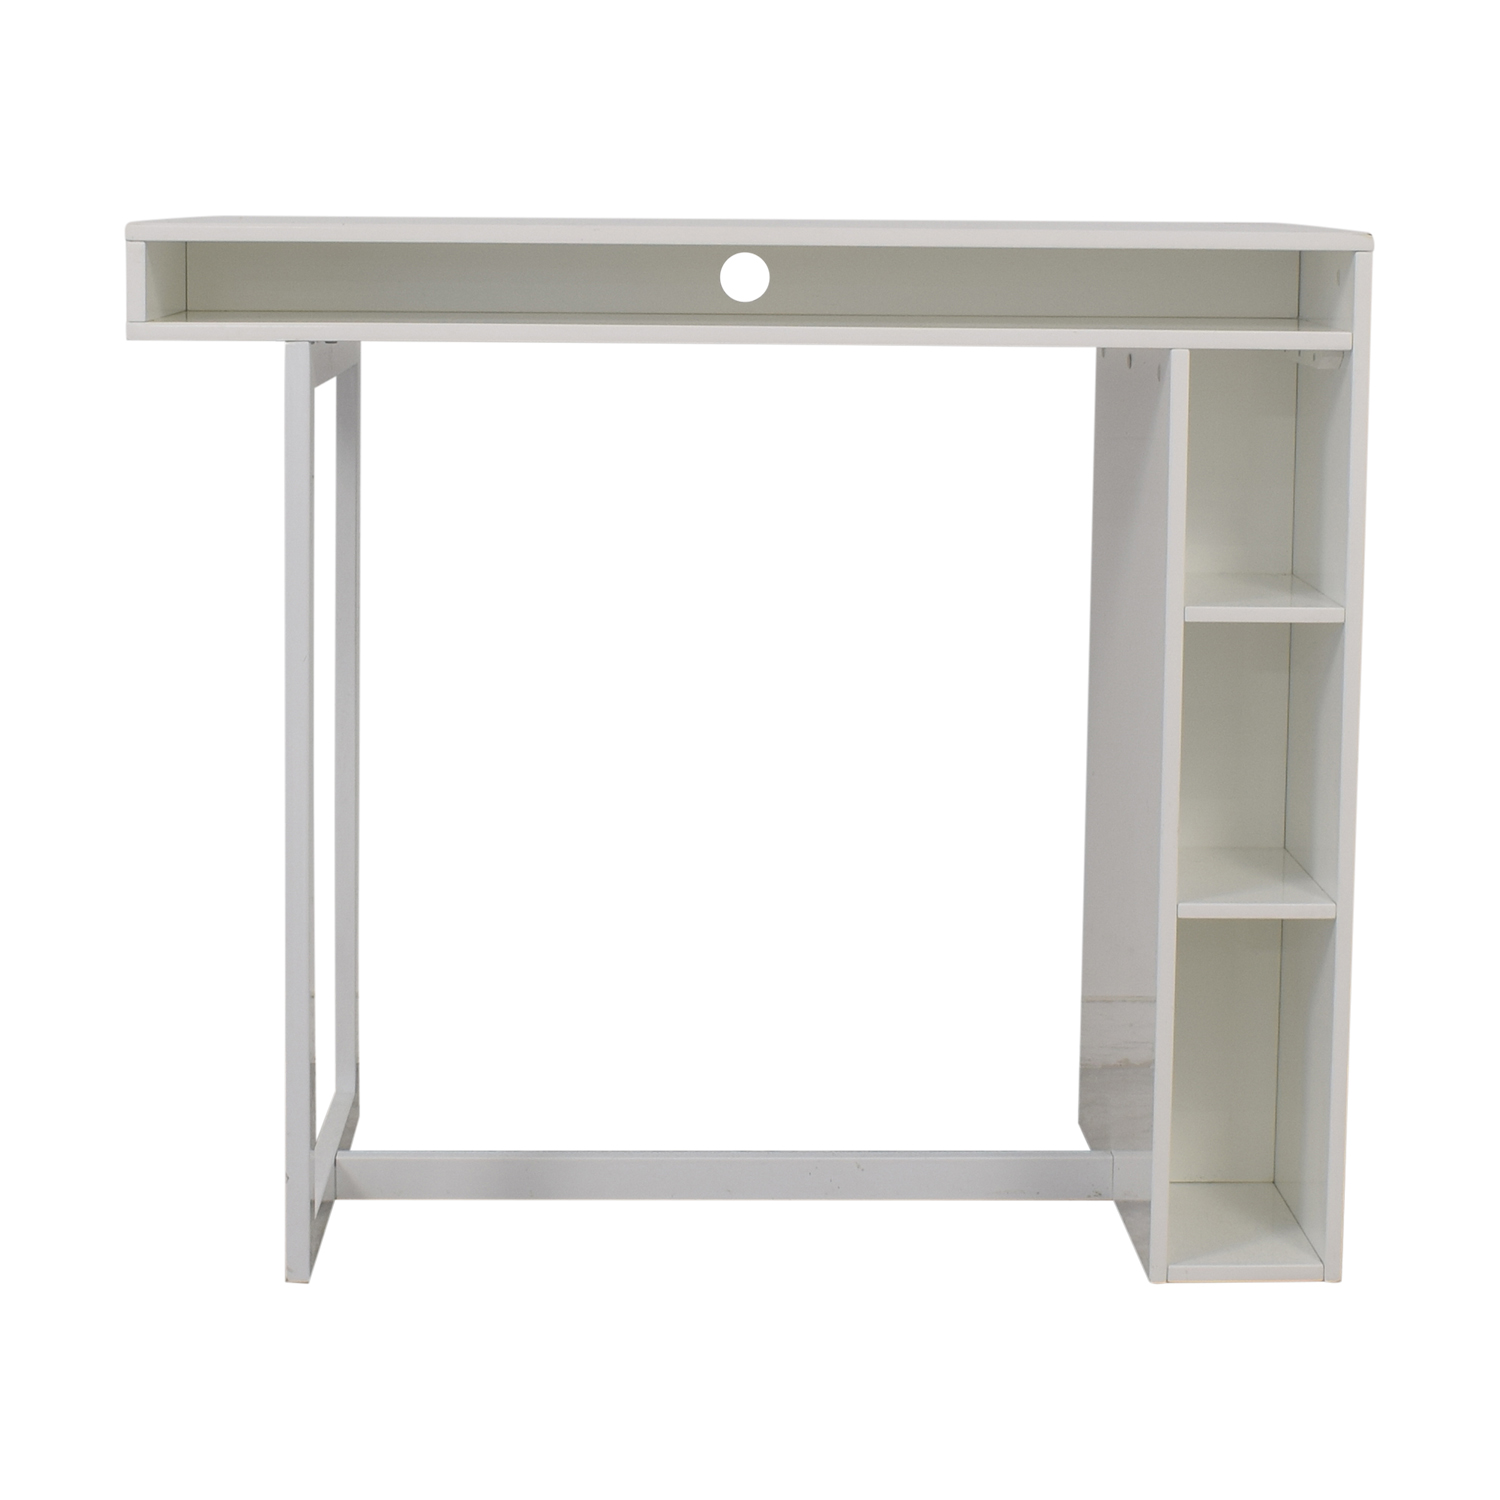 CB2 Public White Counter Dining Table CB2